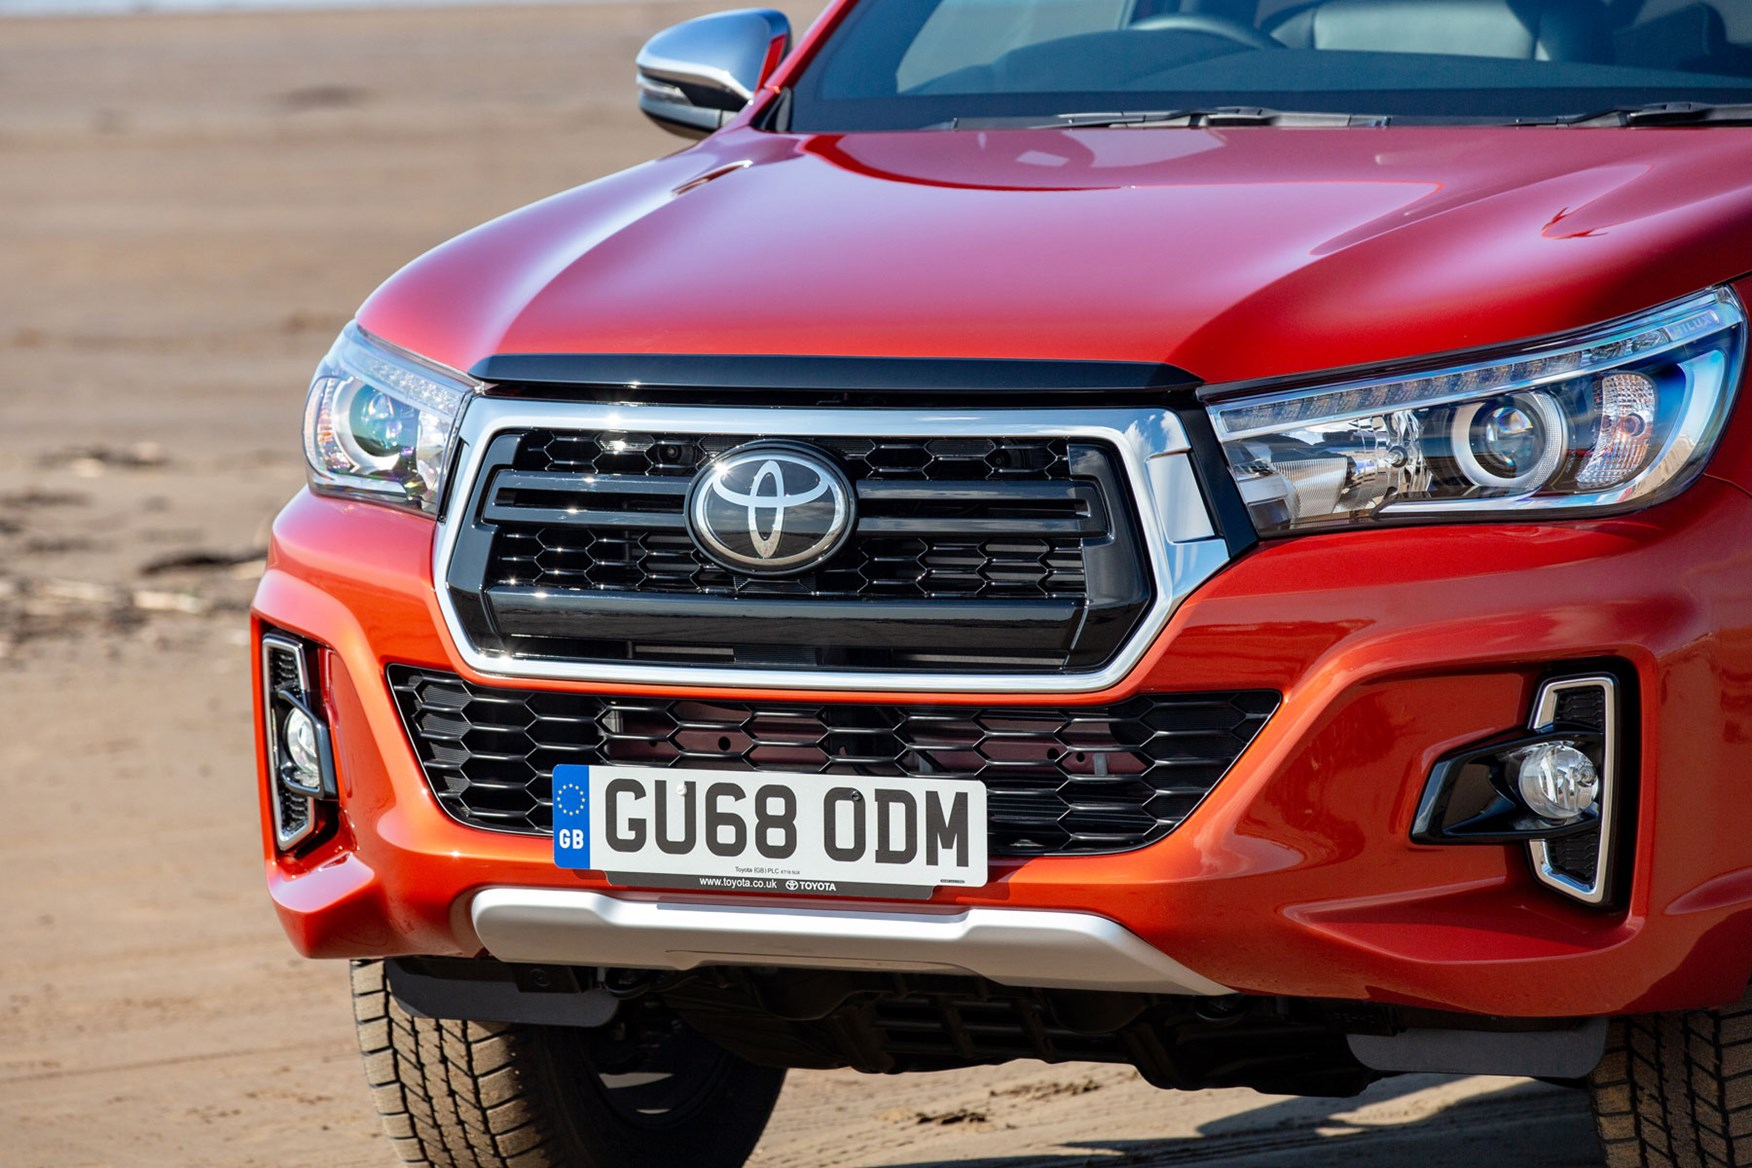 Toyota Hilux Invincible X review - unique front bumper design